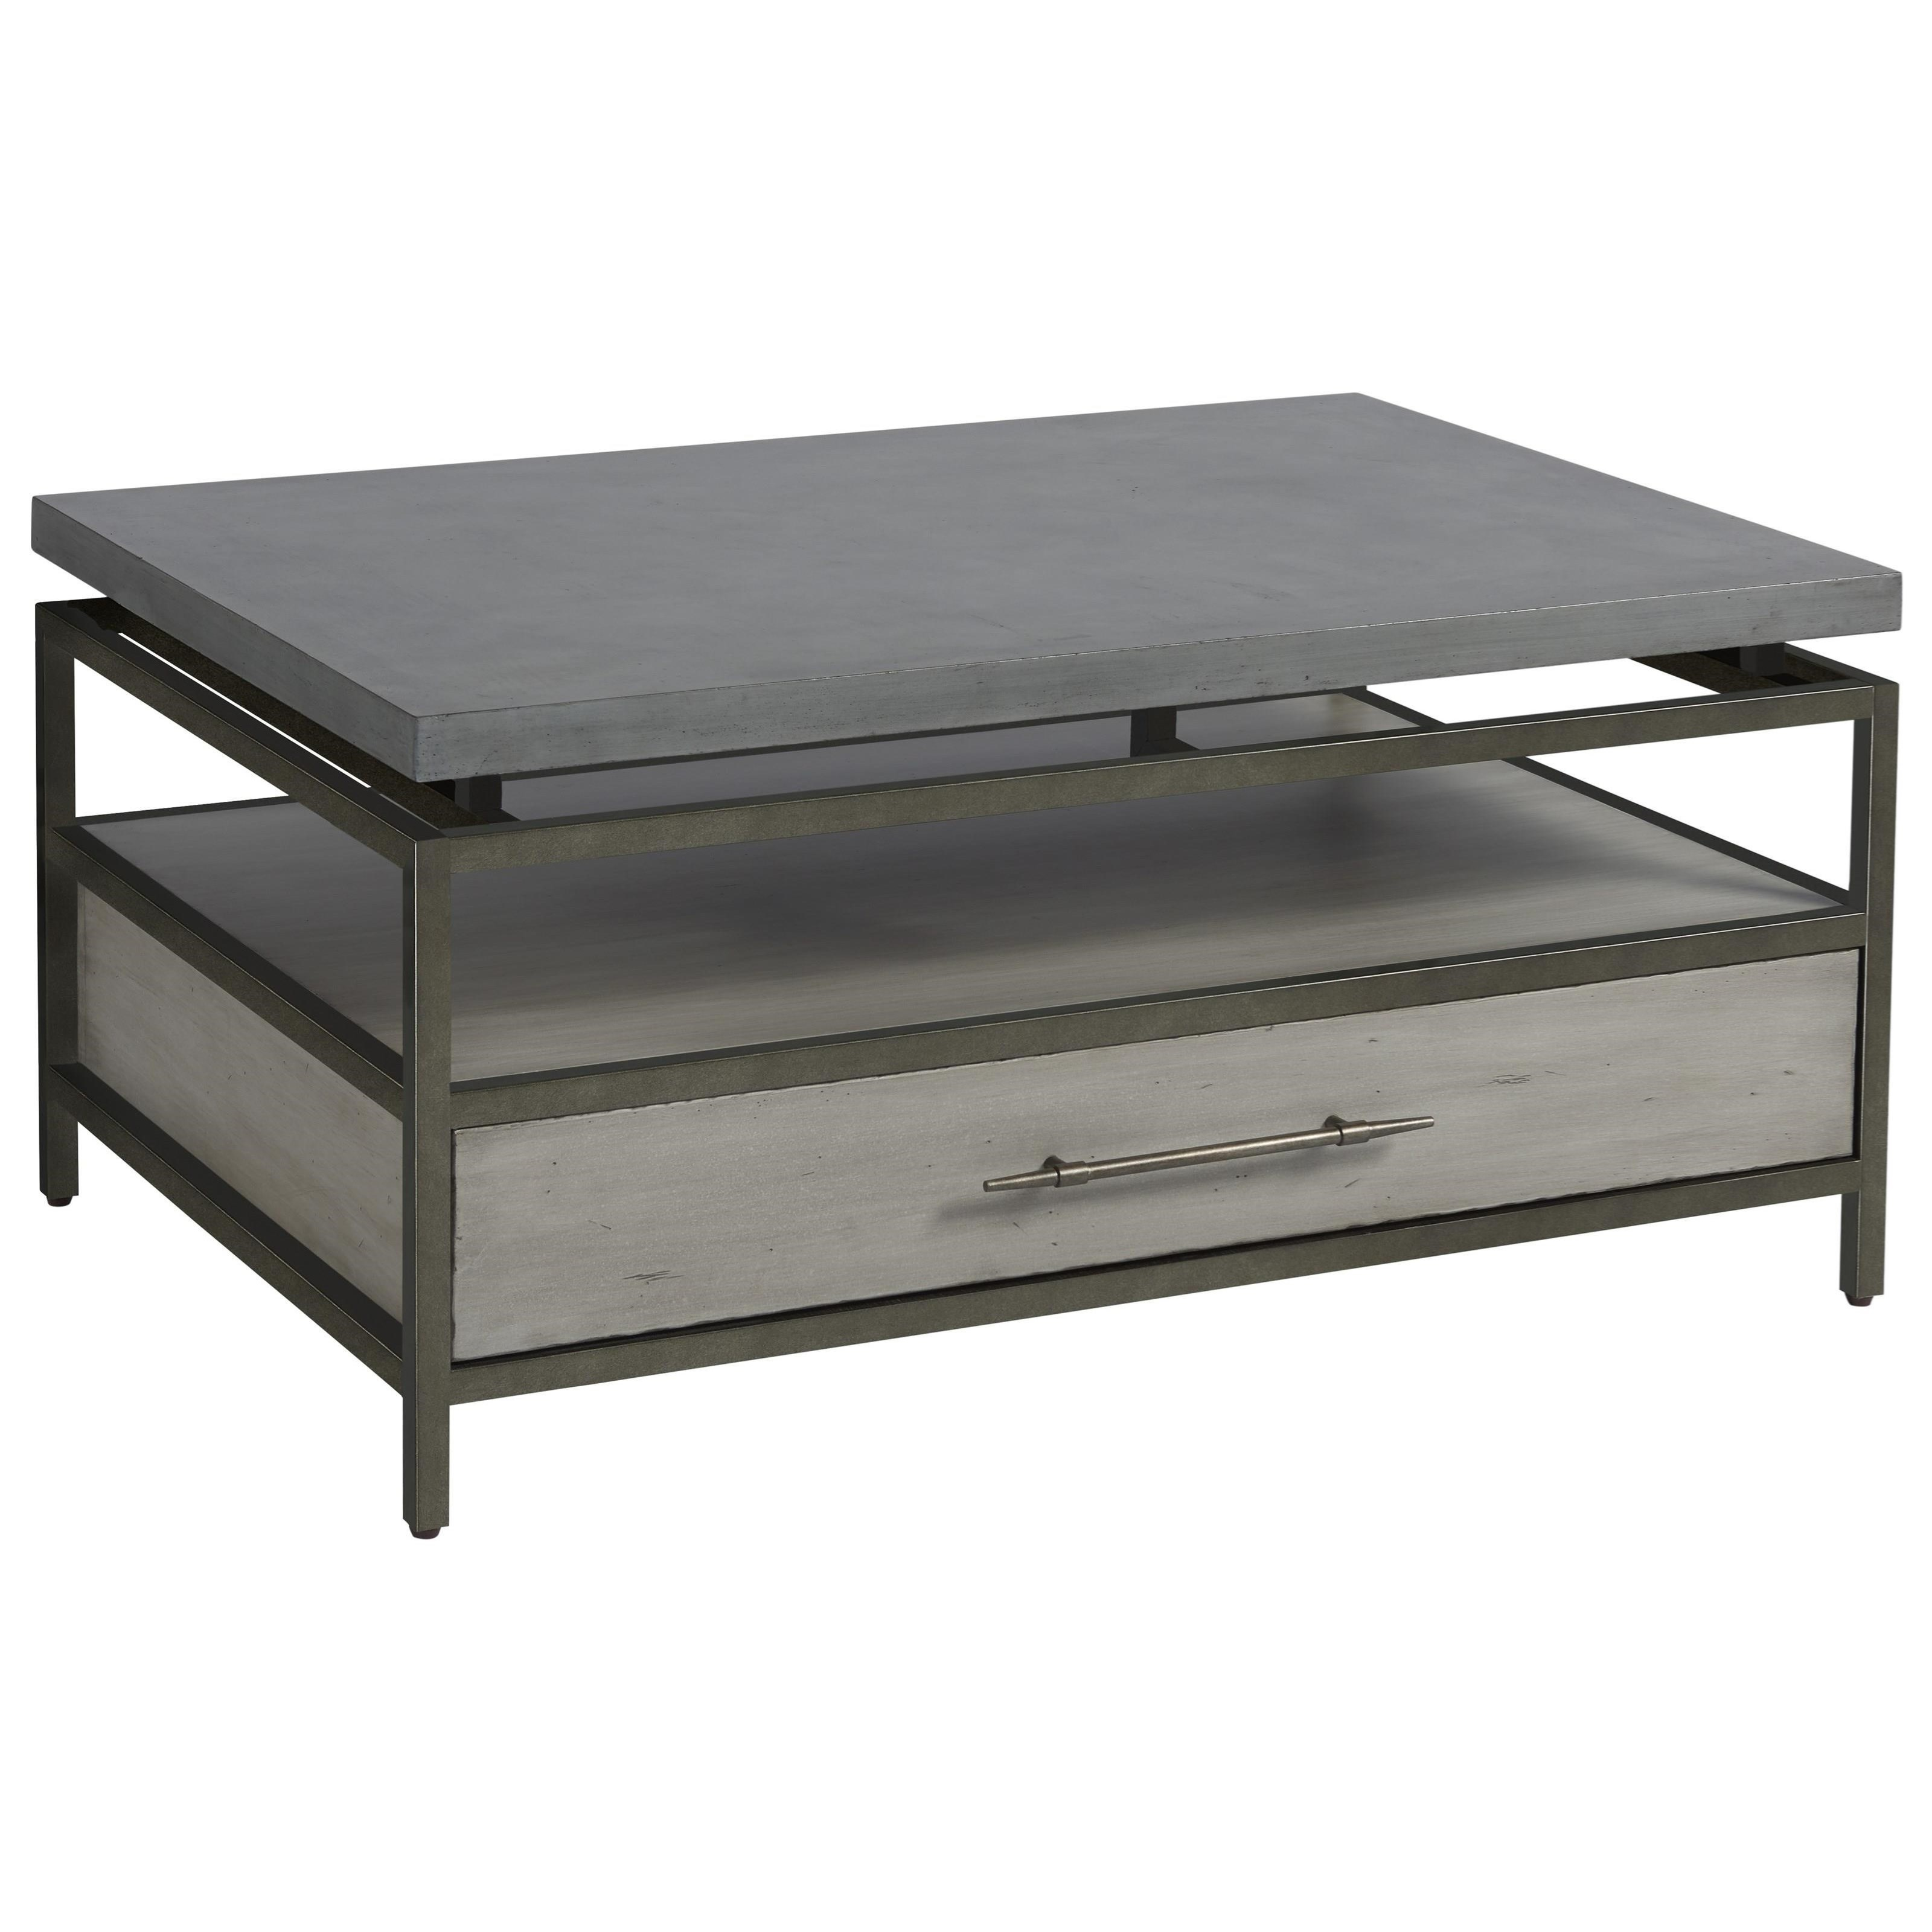 Curated Garrison Cocktail Table by Universal at Baer's Furniture